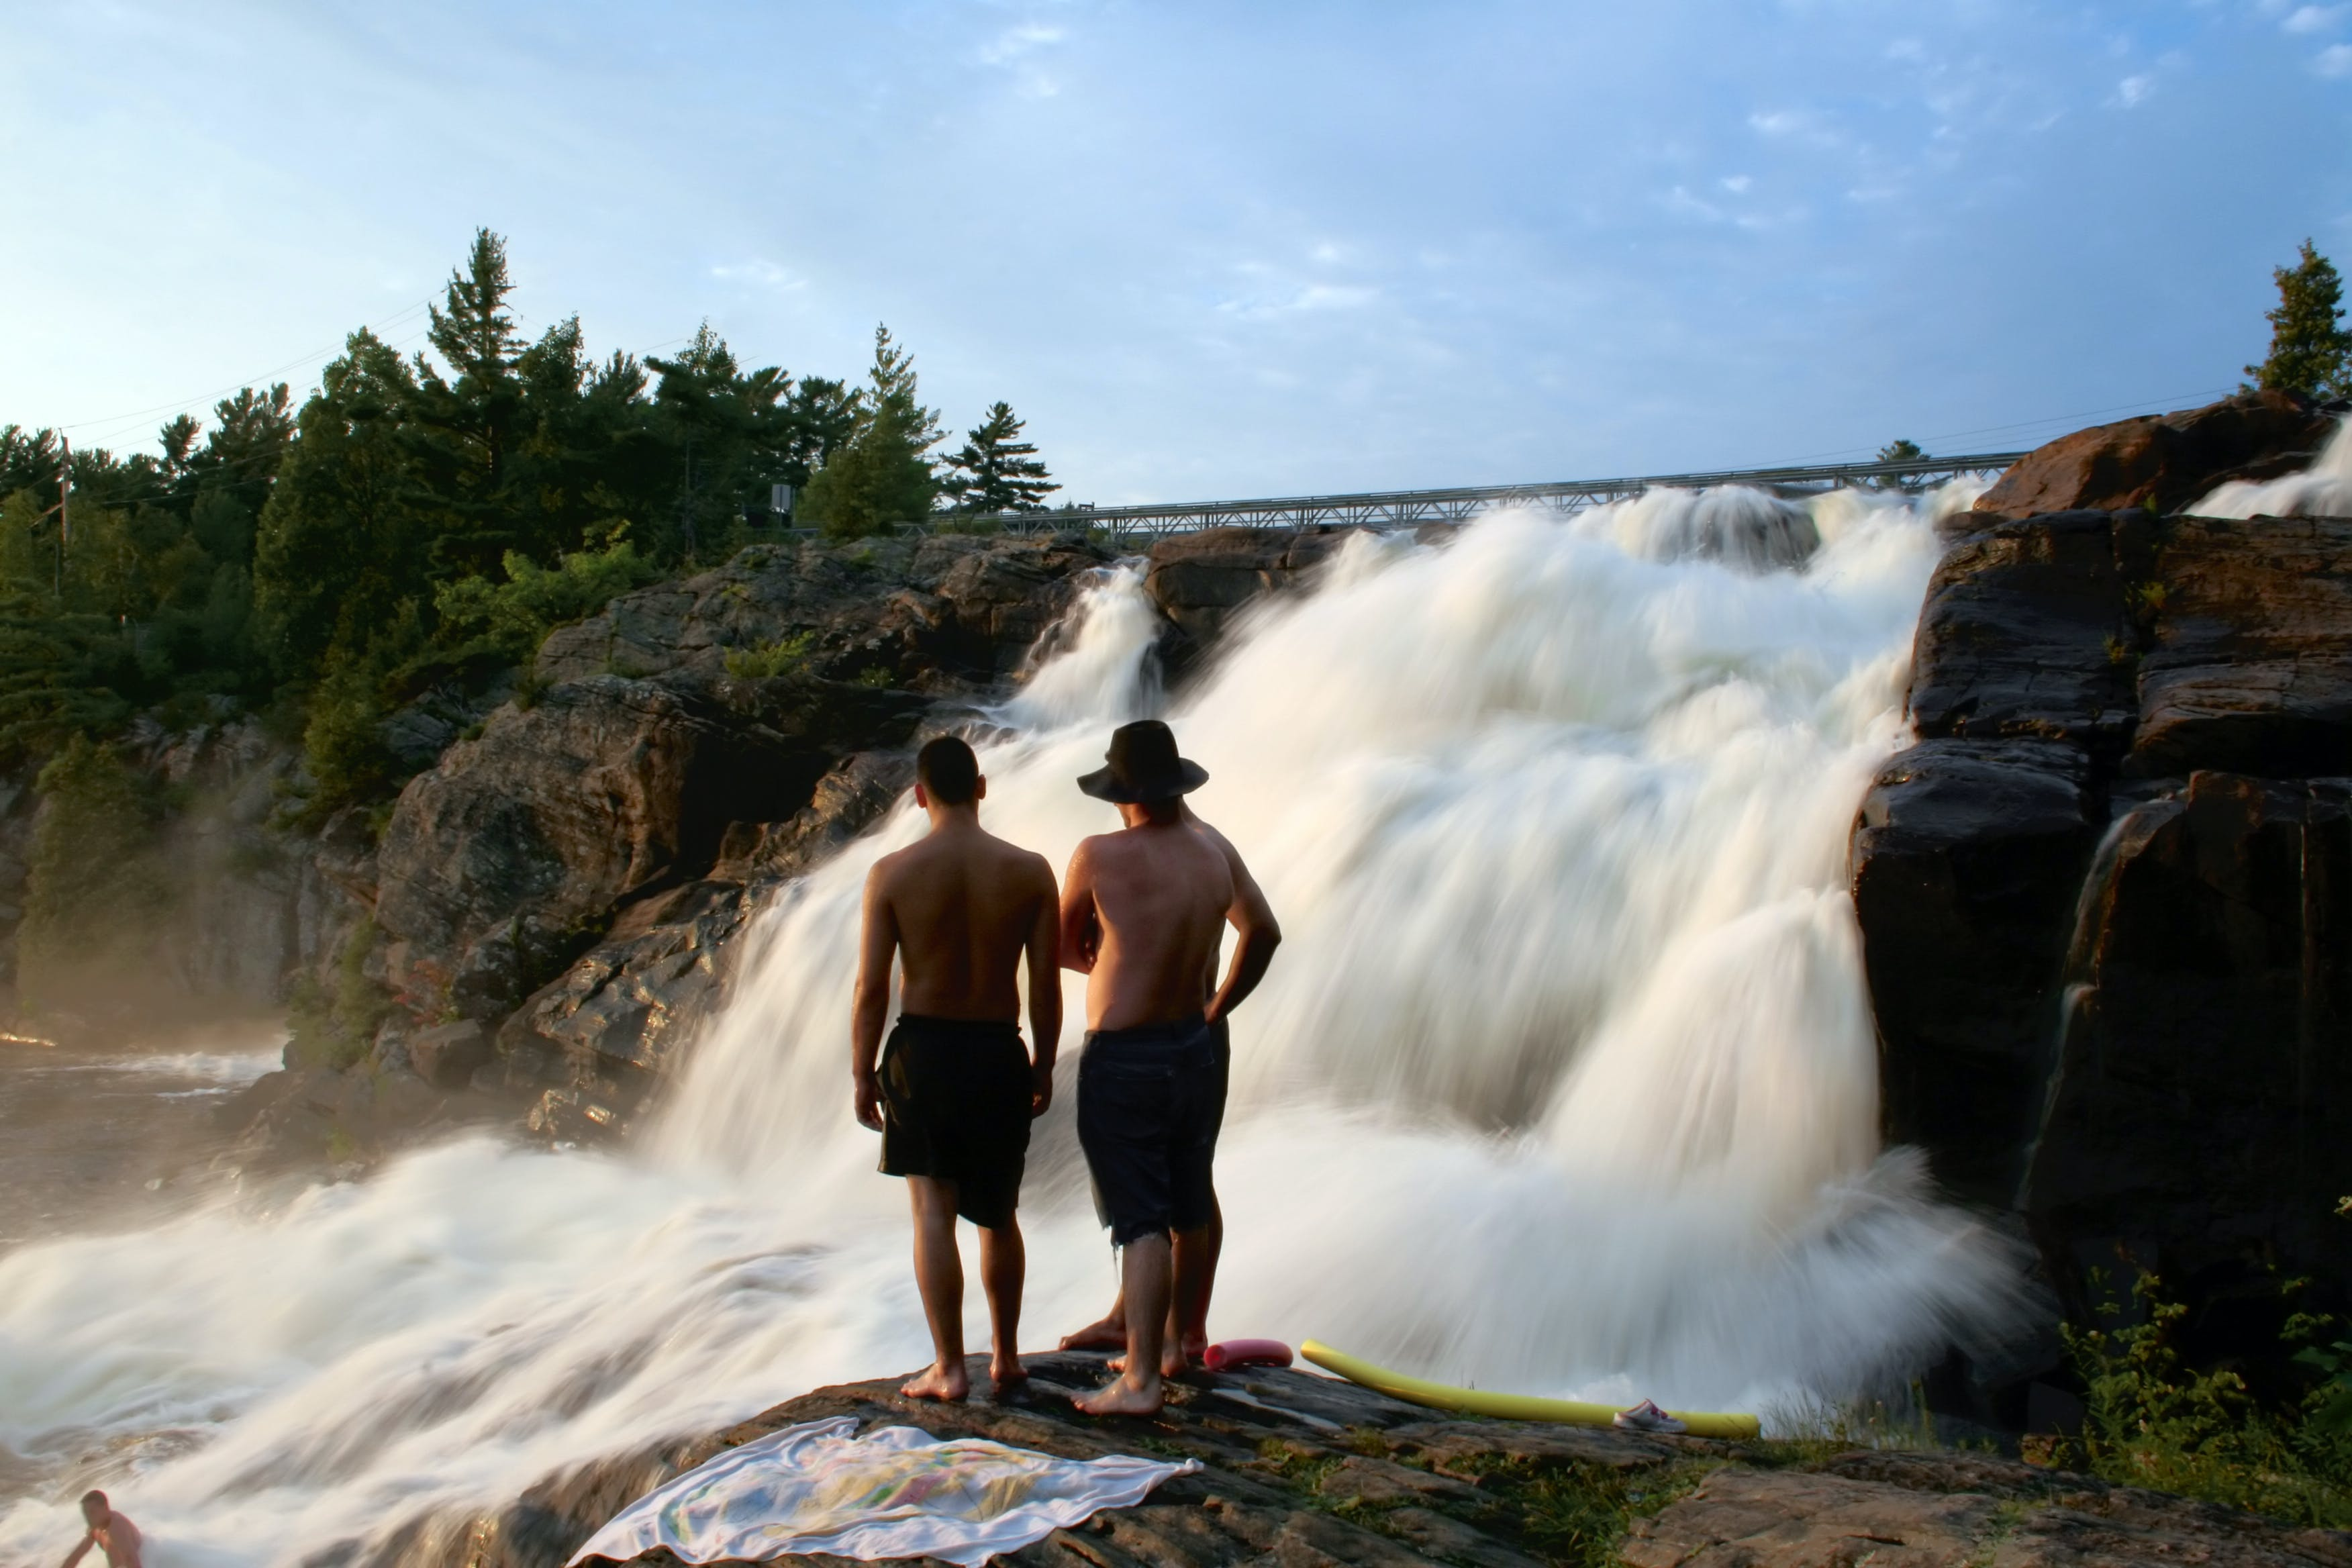 Three Person Standing on Rock Watching Waterfall